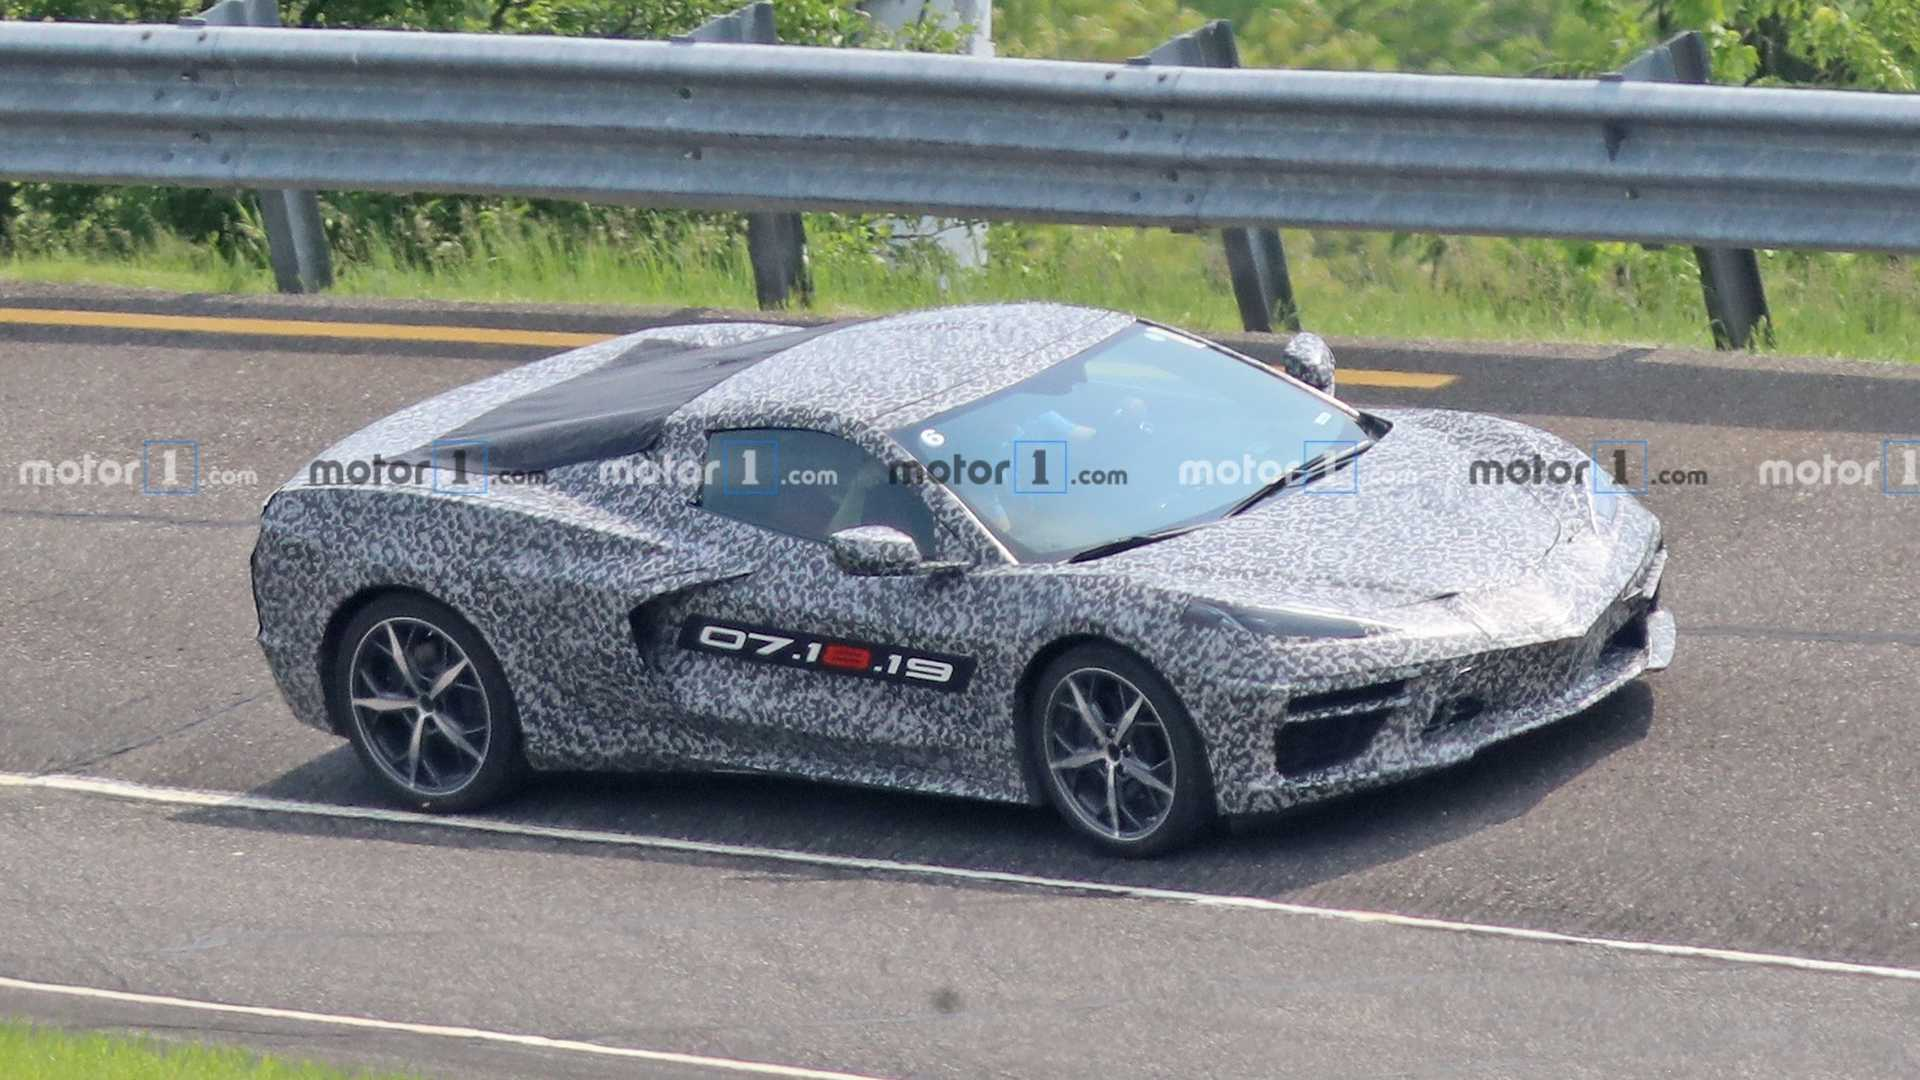 2020 Chevy Corvette C8 Debuts Today Watch The Unveiling Live Here